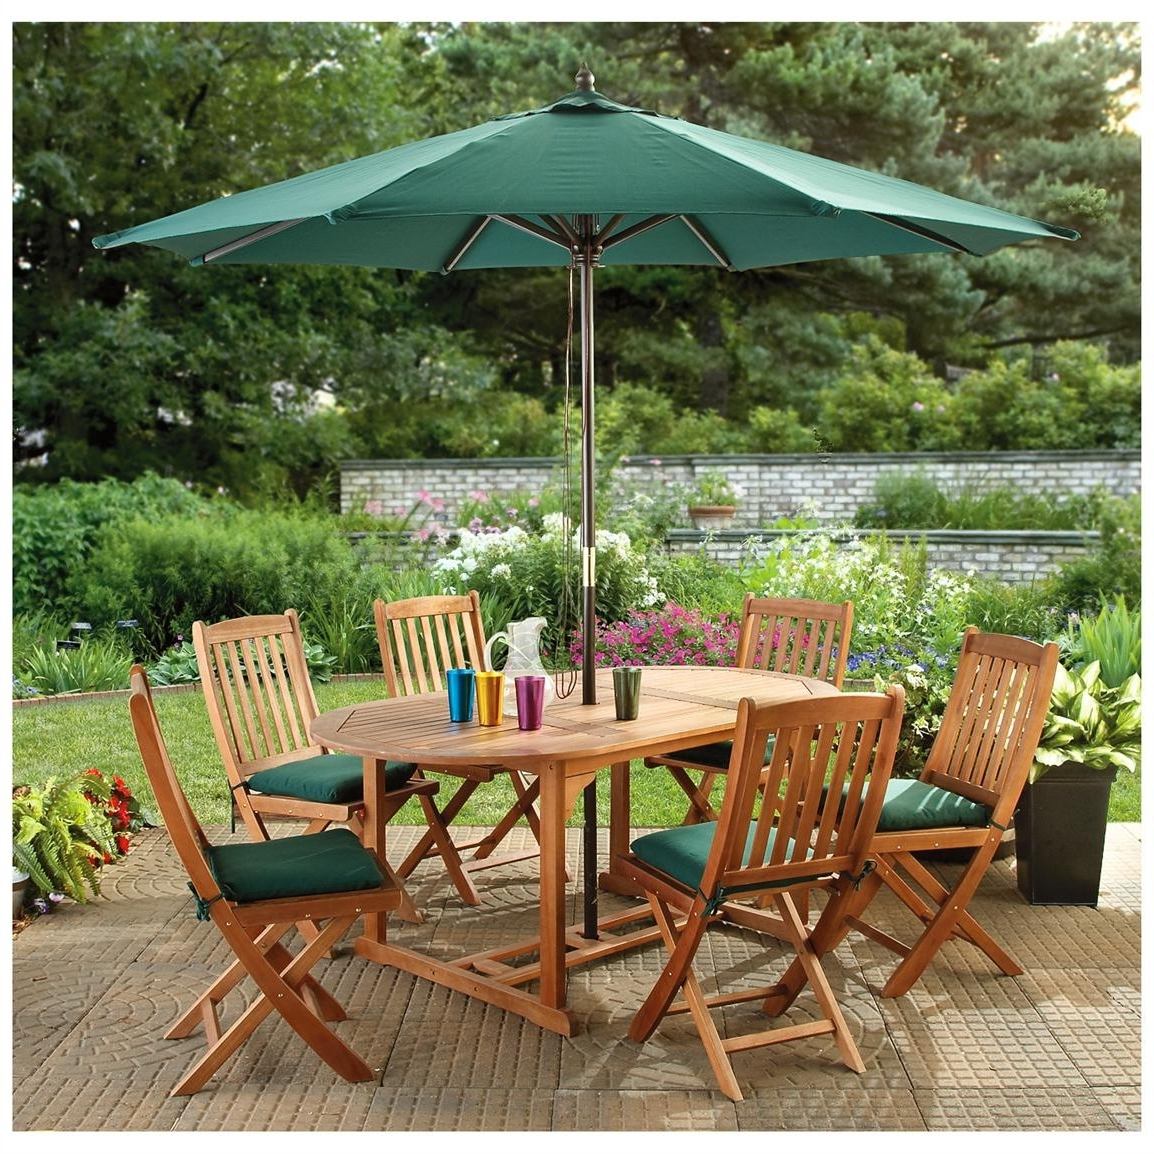 Patio: Awesome Umbrella Patio Set Frontgate Outdoor Furniture For Fashionable Walmart Patio Umbrellas (View 14 of 20)